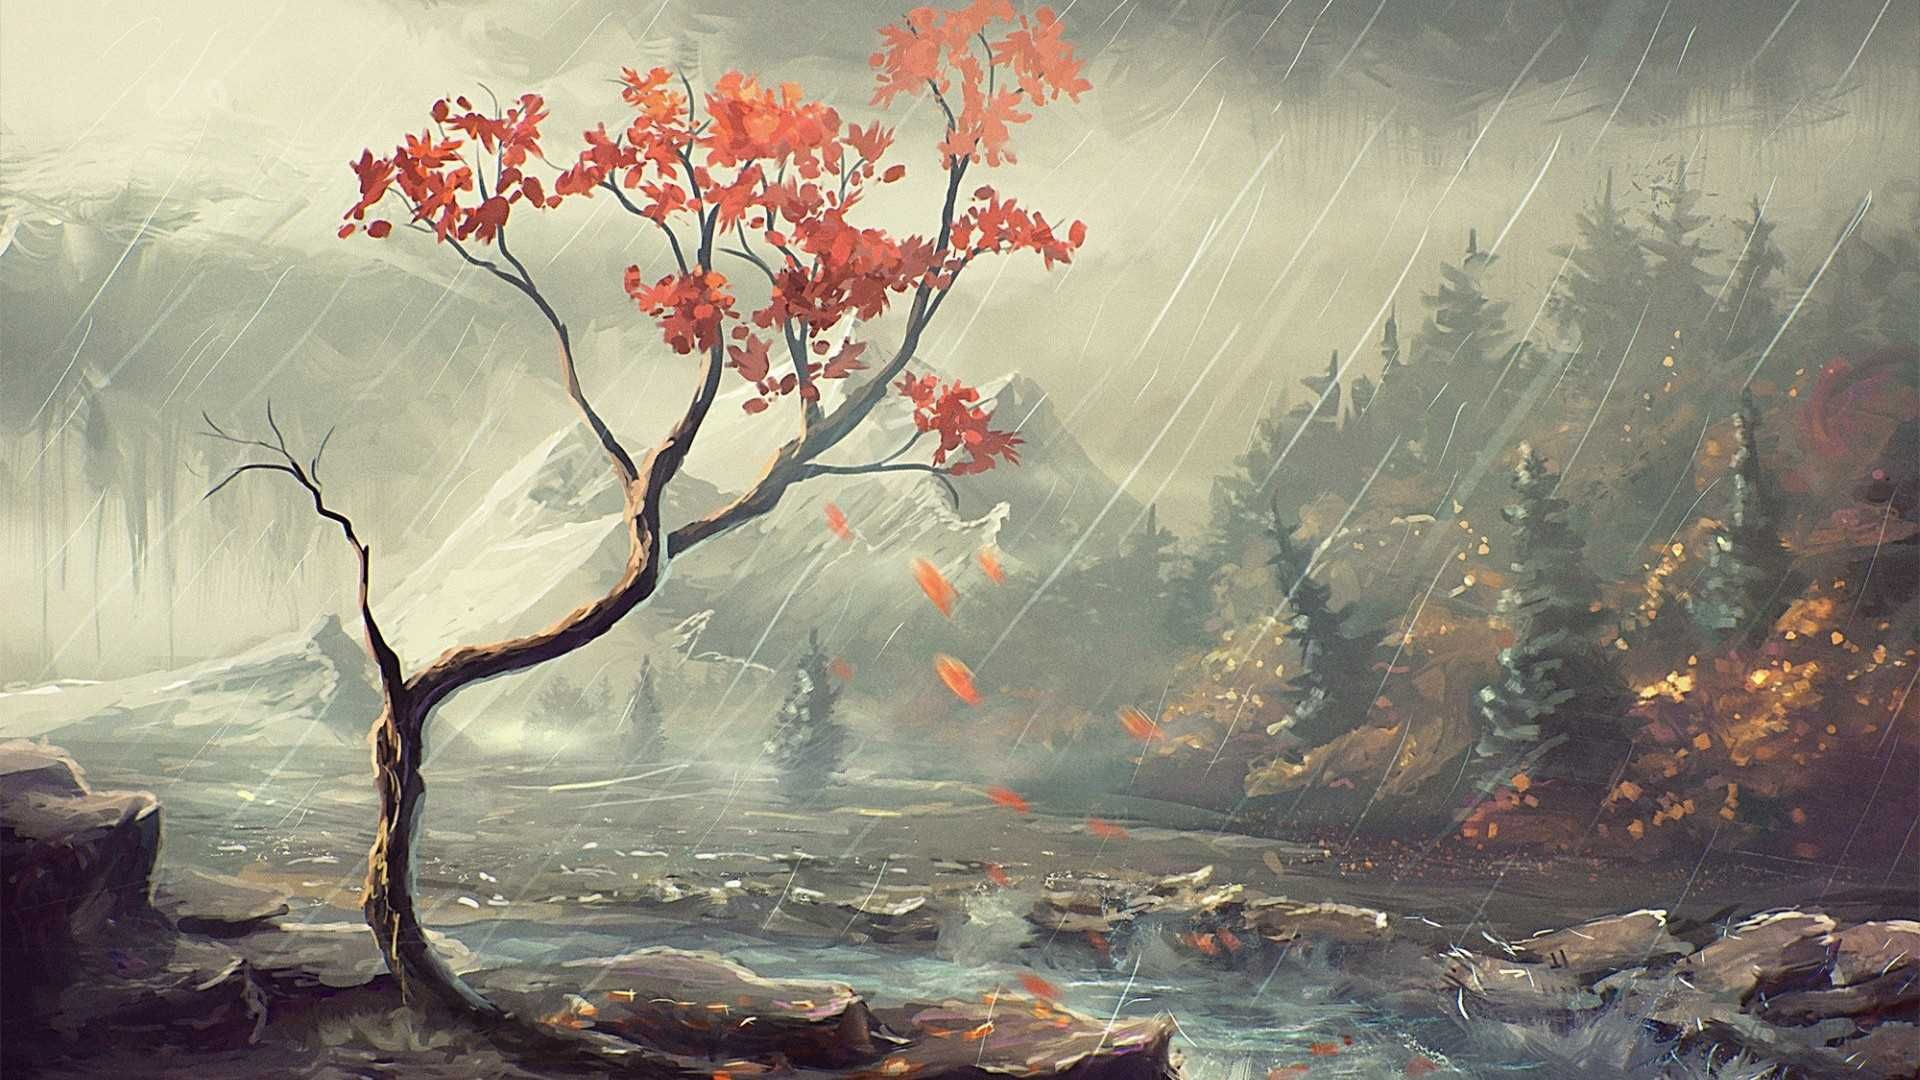 Chinese Painting Wallpaper Widescreen With Hd Desktop 1920x1080 Px